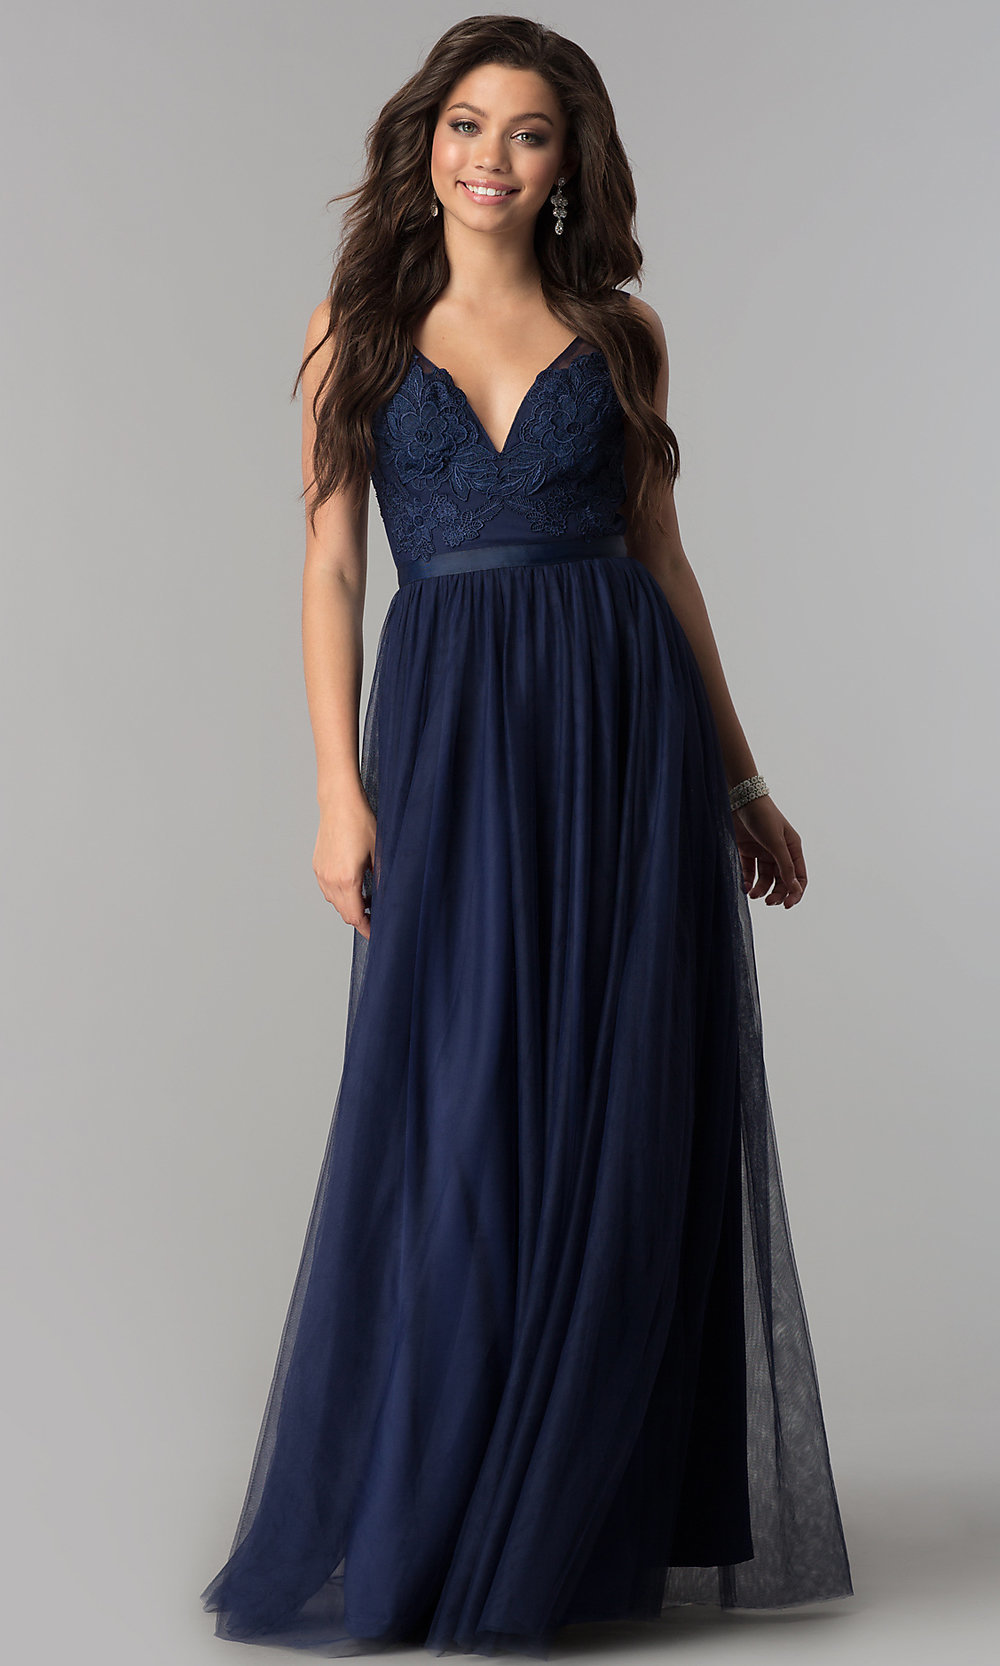 Lace Applique Tulle V Neck Long Prom Dress Promgirl